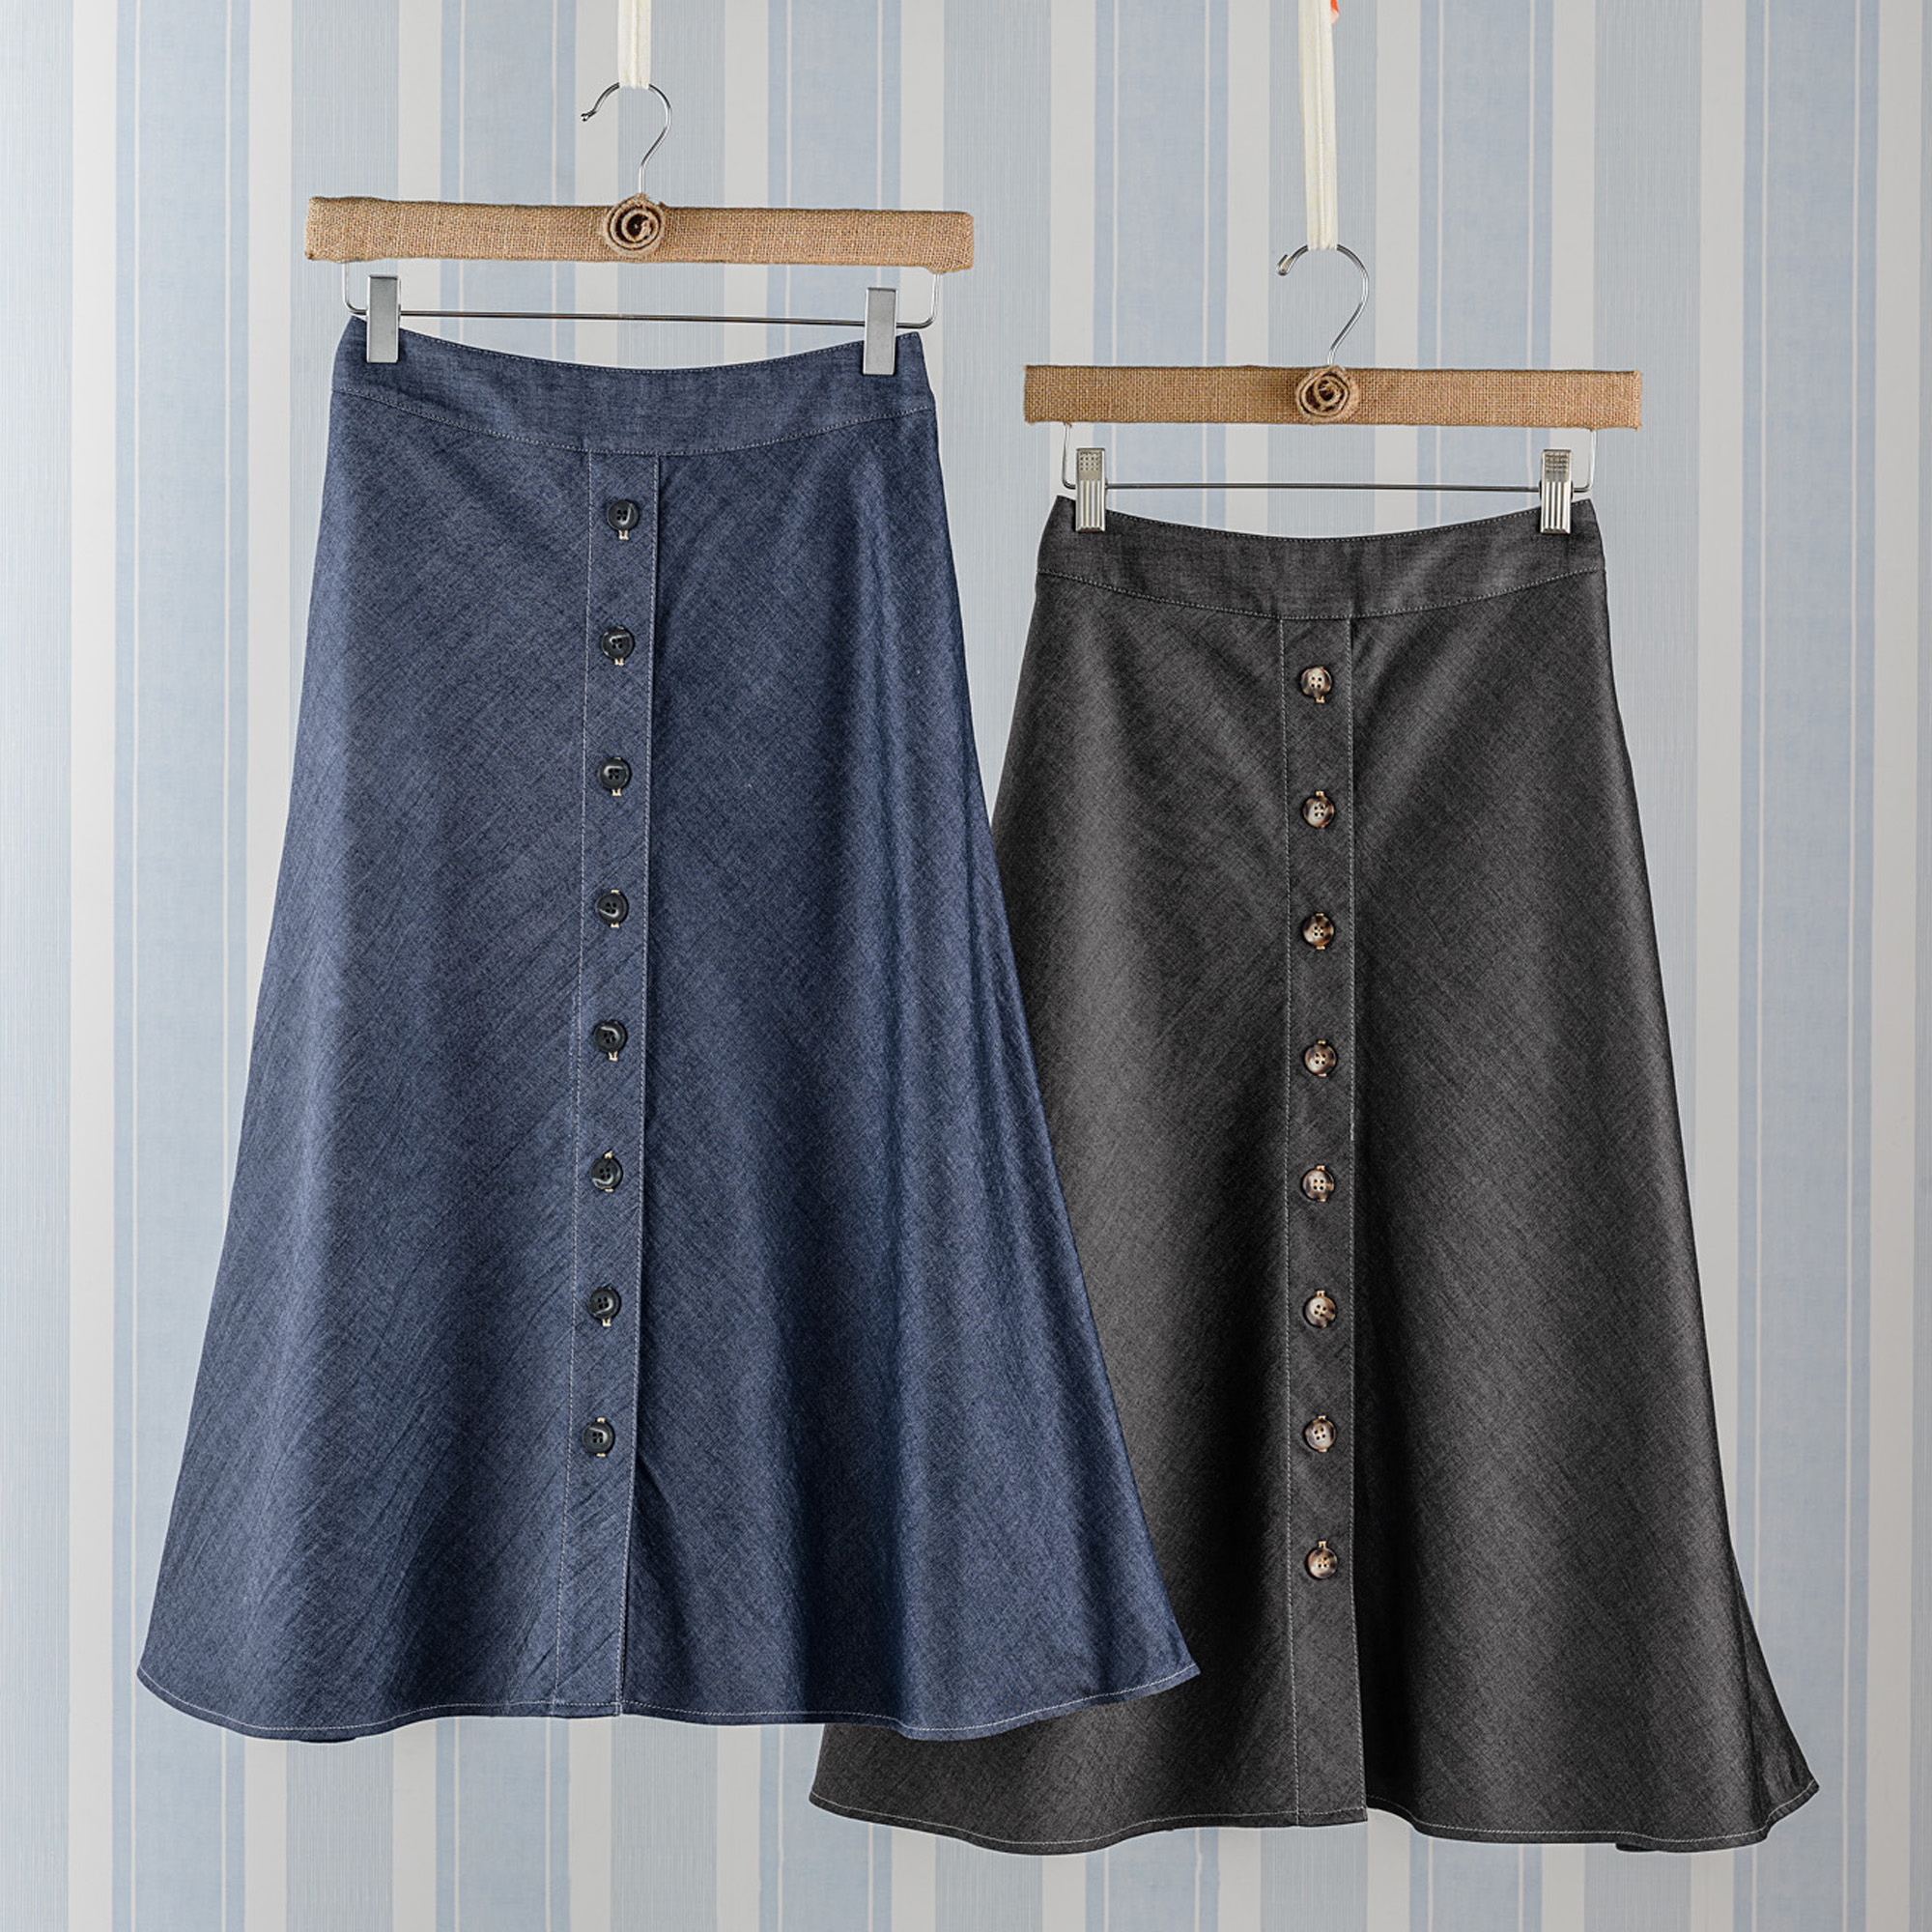 Tencel Denim Skirt